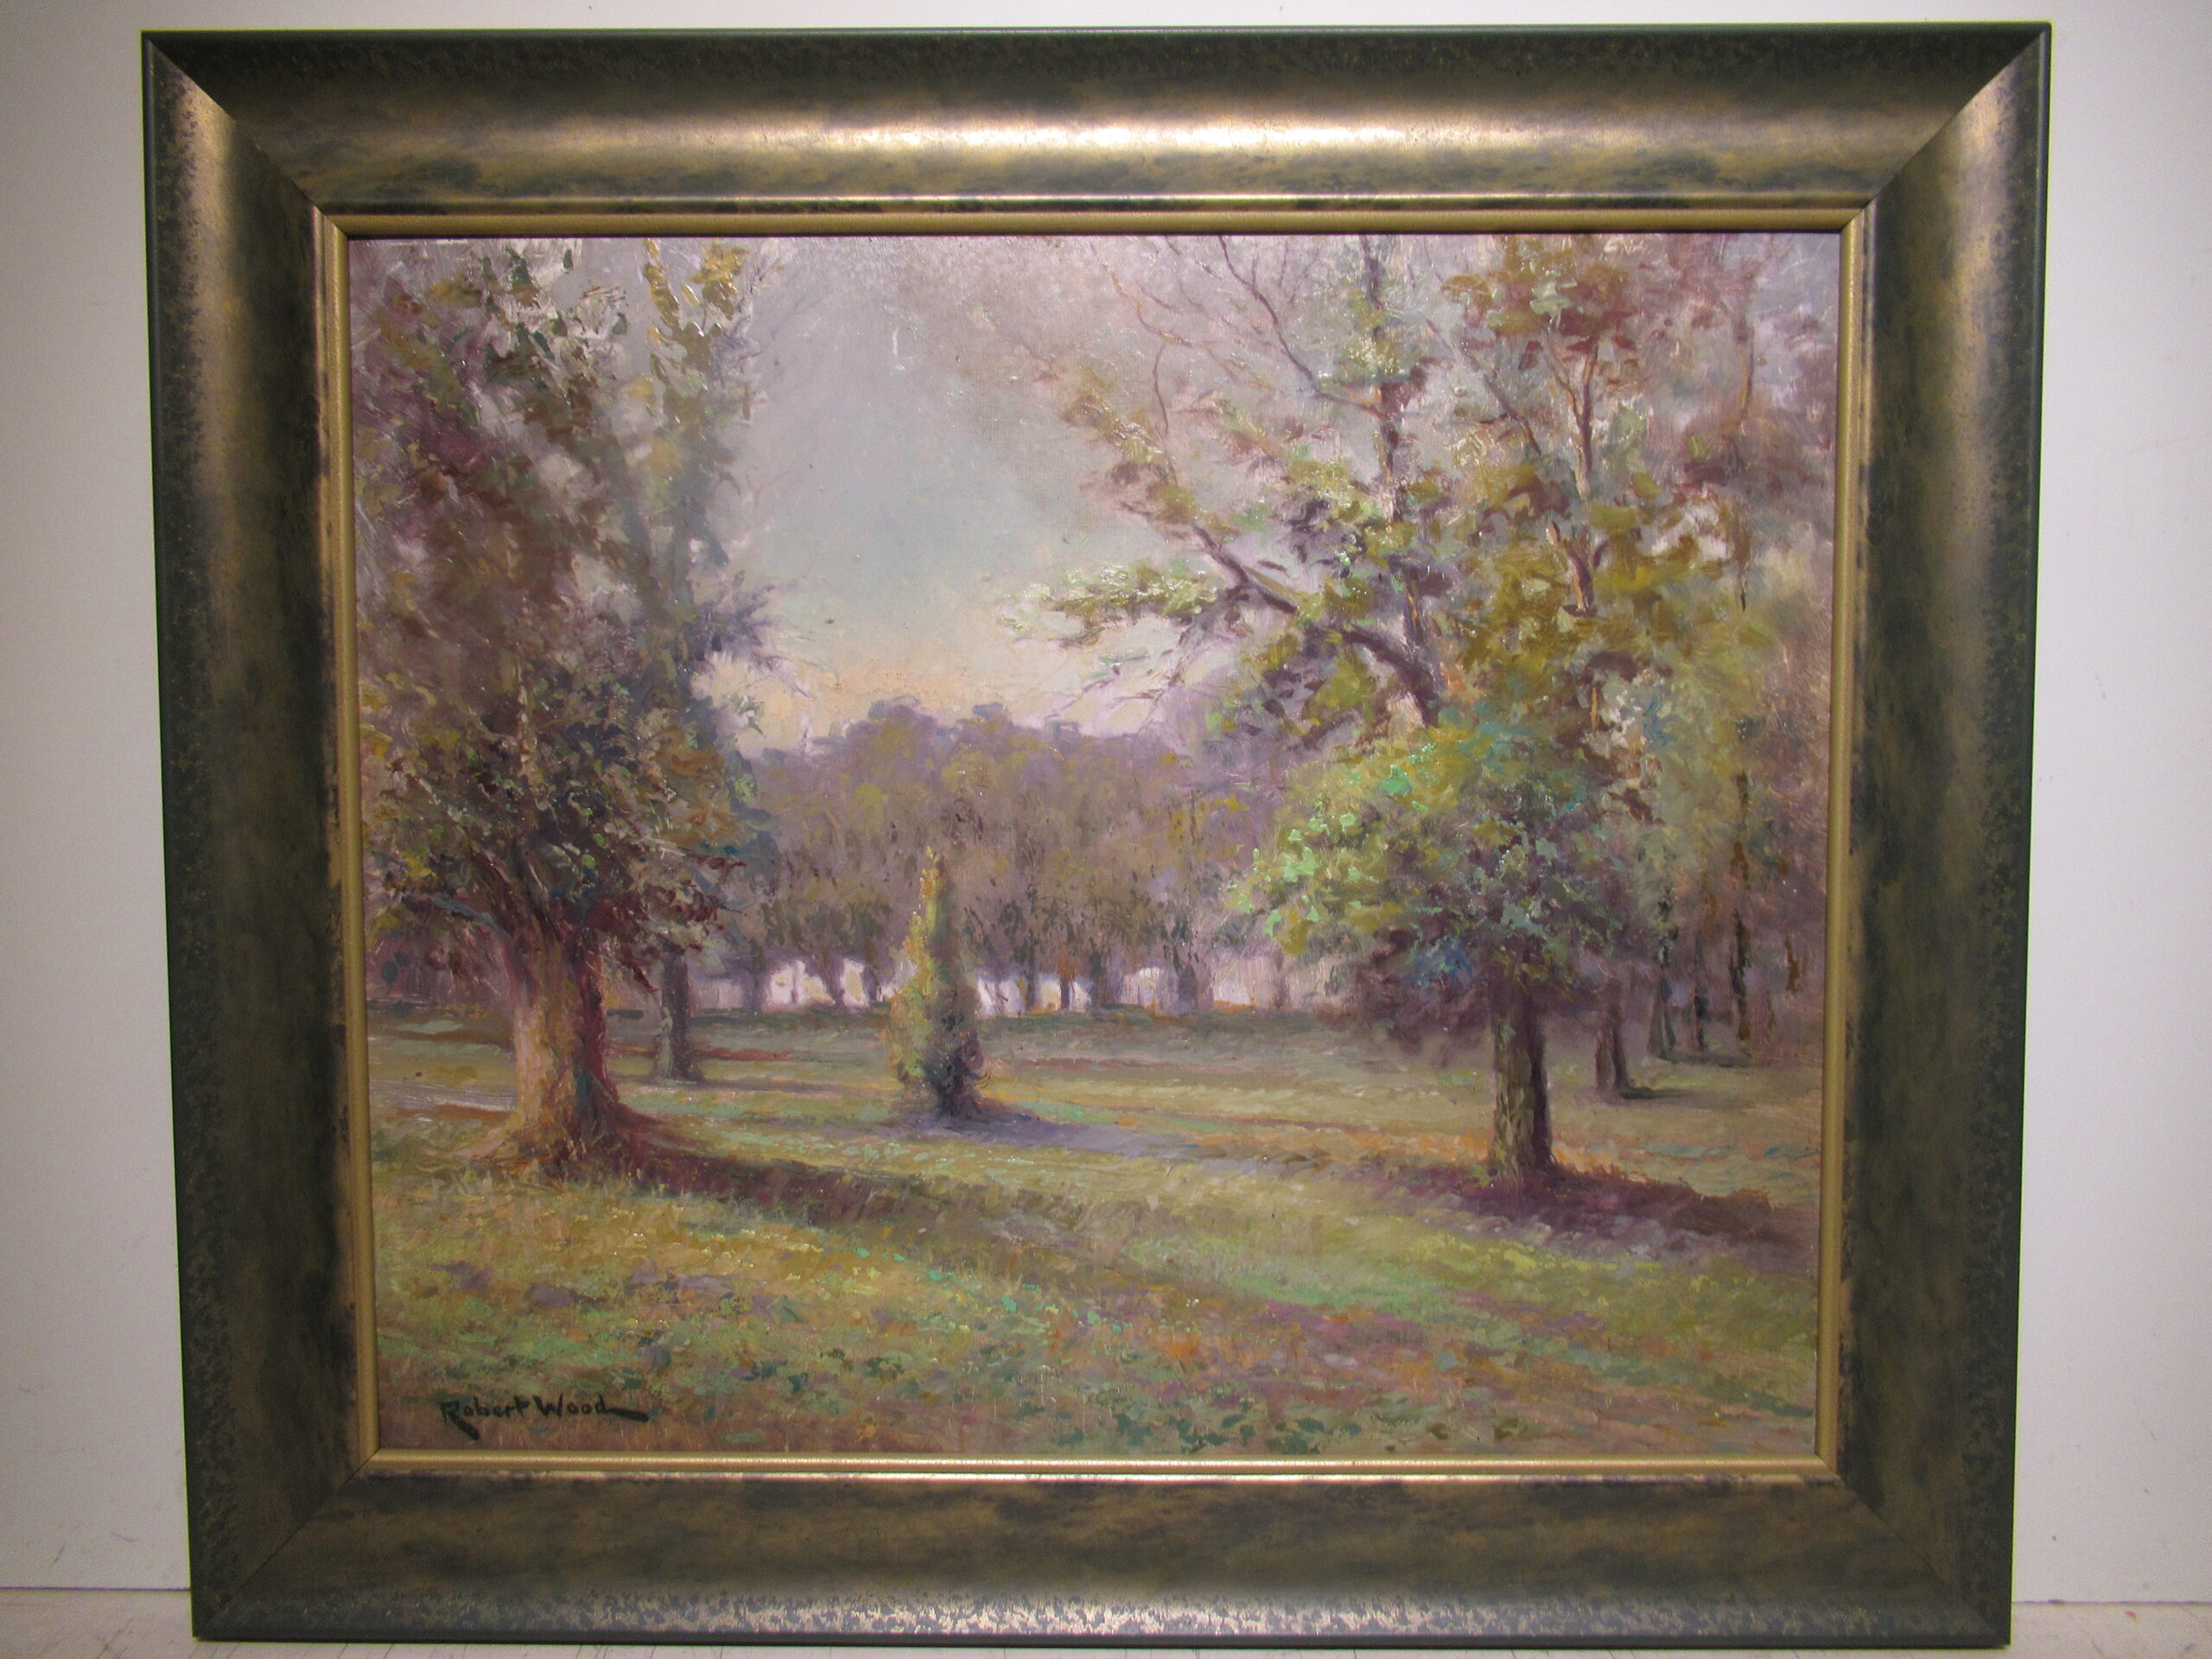 20×24 Robert Wood 1930 Brackenridge Park Oil Painting